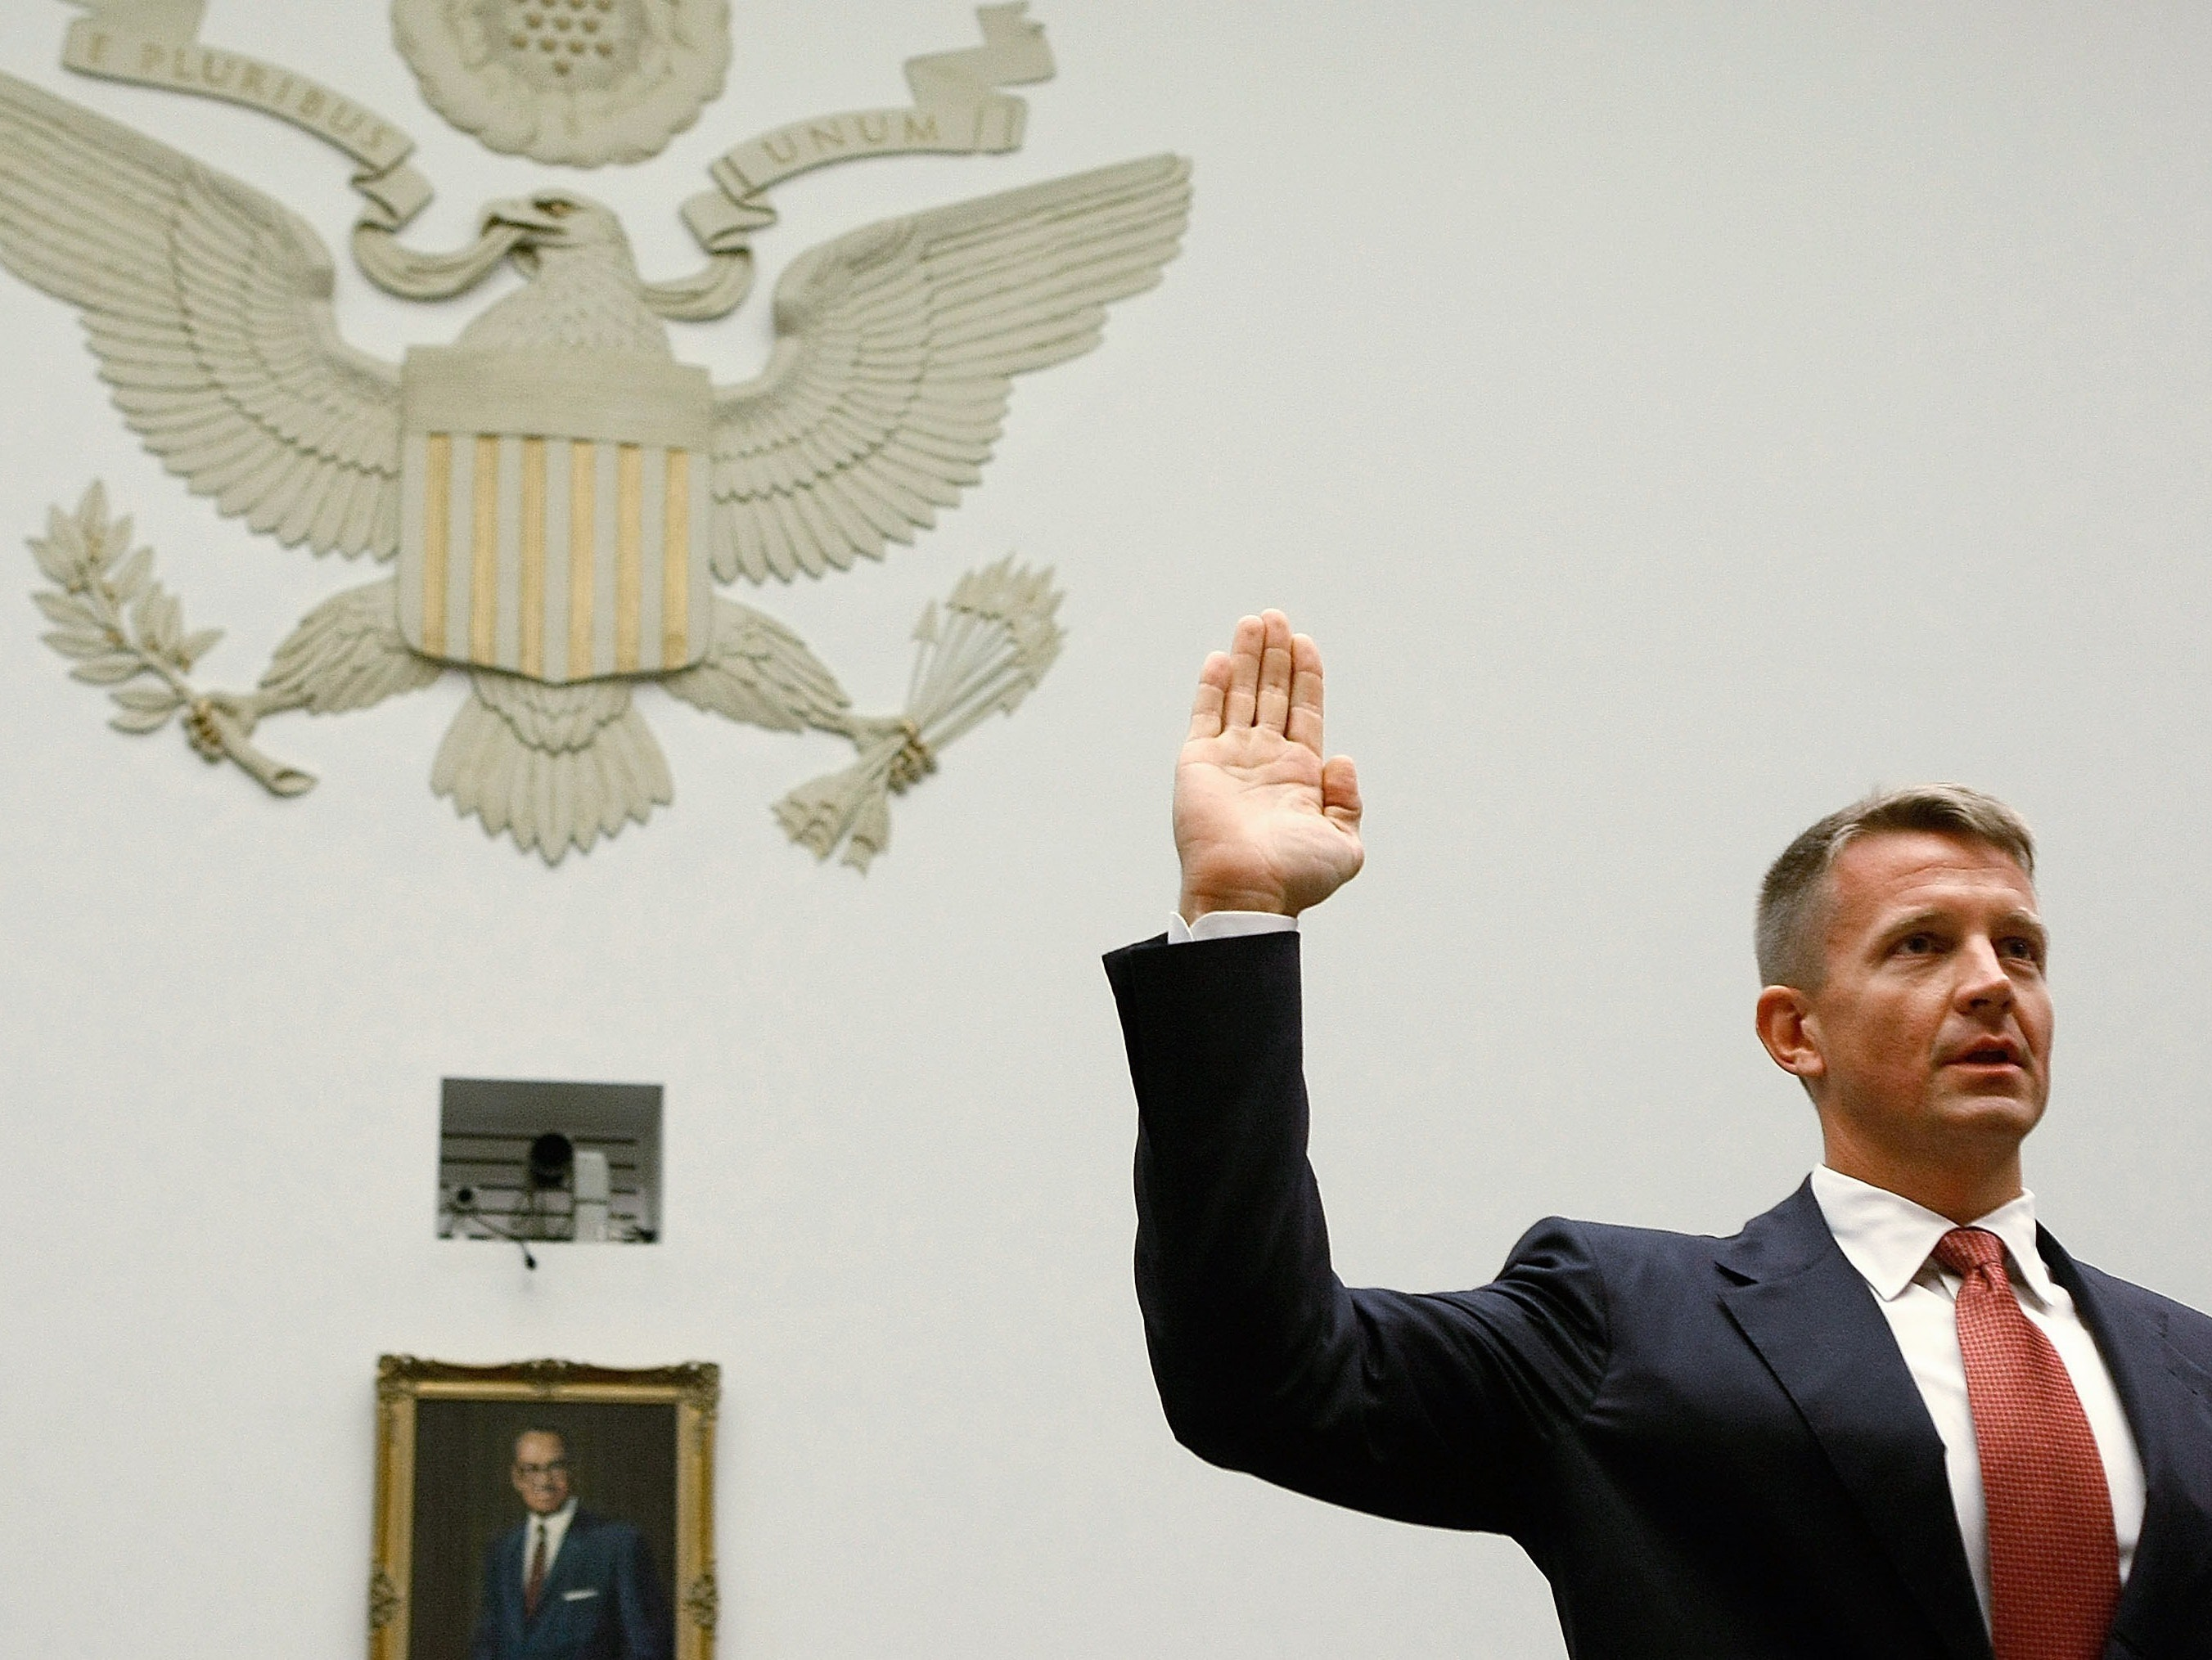 Erik Prince, chairman of the Prince Group, LLC and Blackwater USA, is sworn in during a House Oversight and Government Reform Committee hearing.